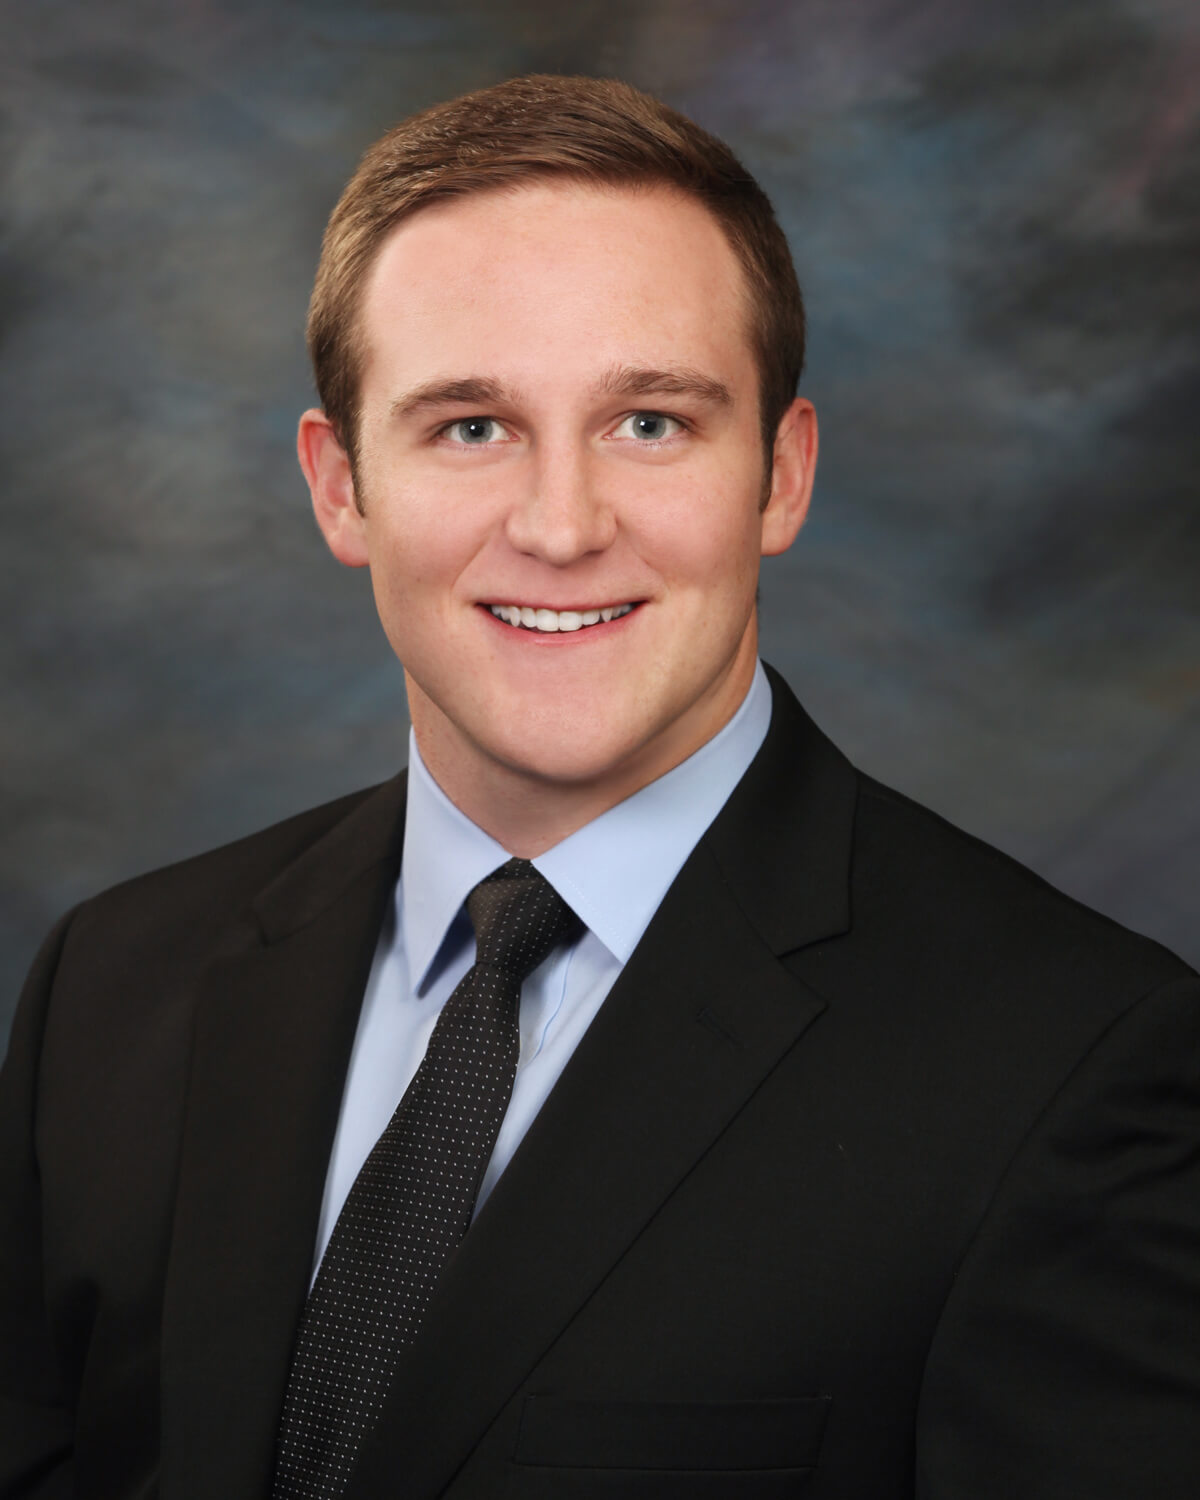 EAD hires construction manager process engineer accountant Zach Bell